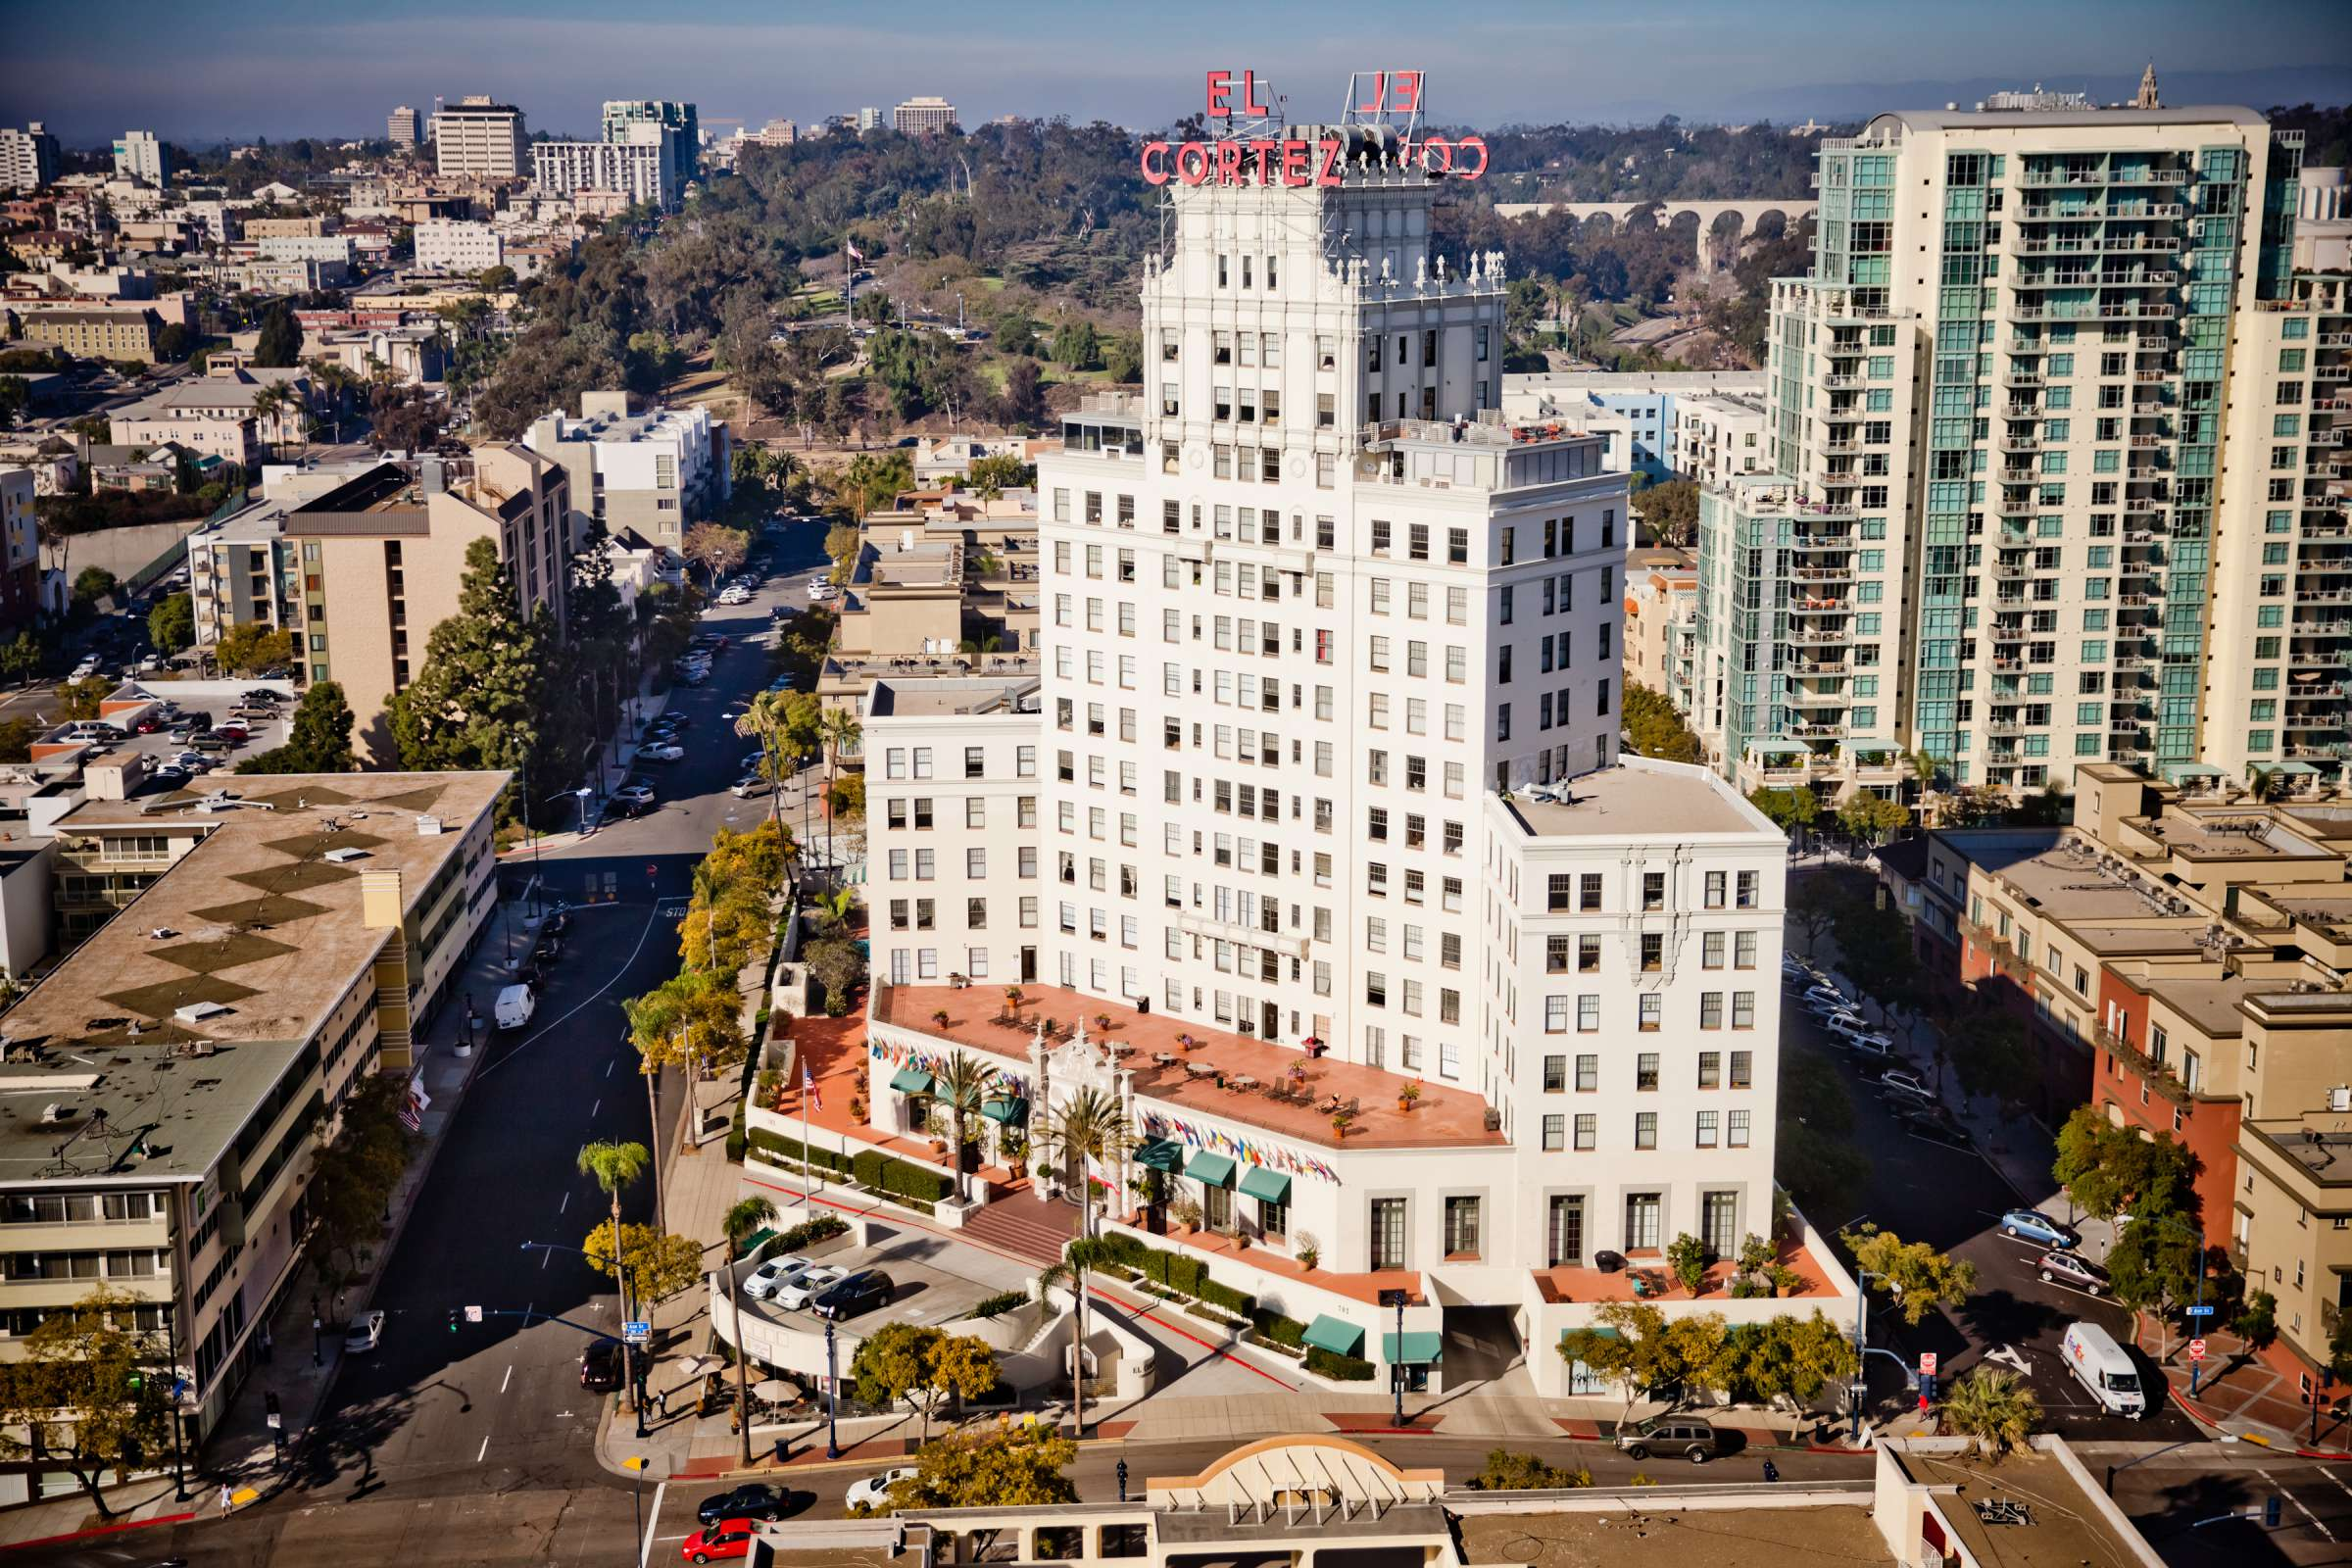 El Cortez | San Diego Photographer - True Photography